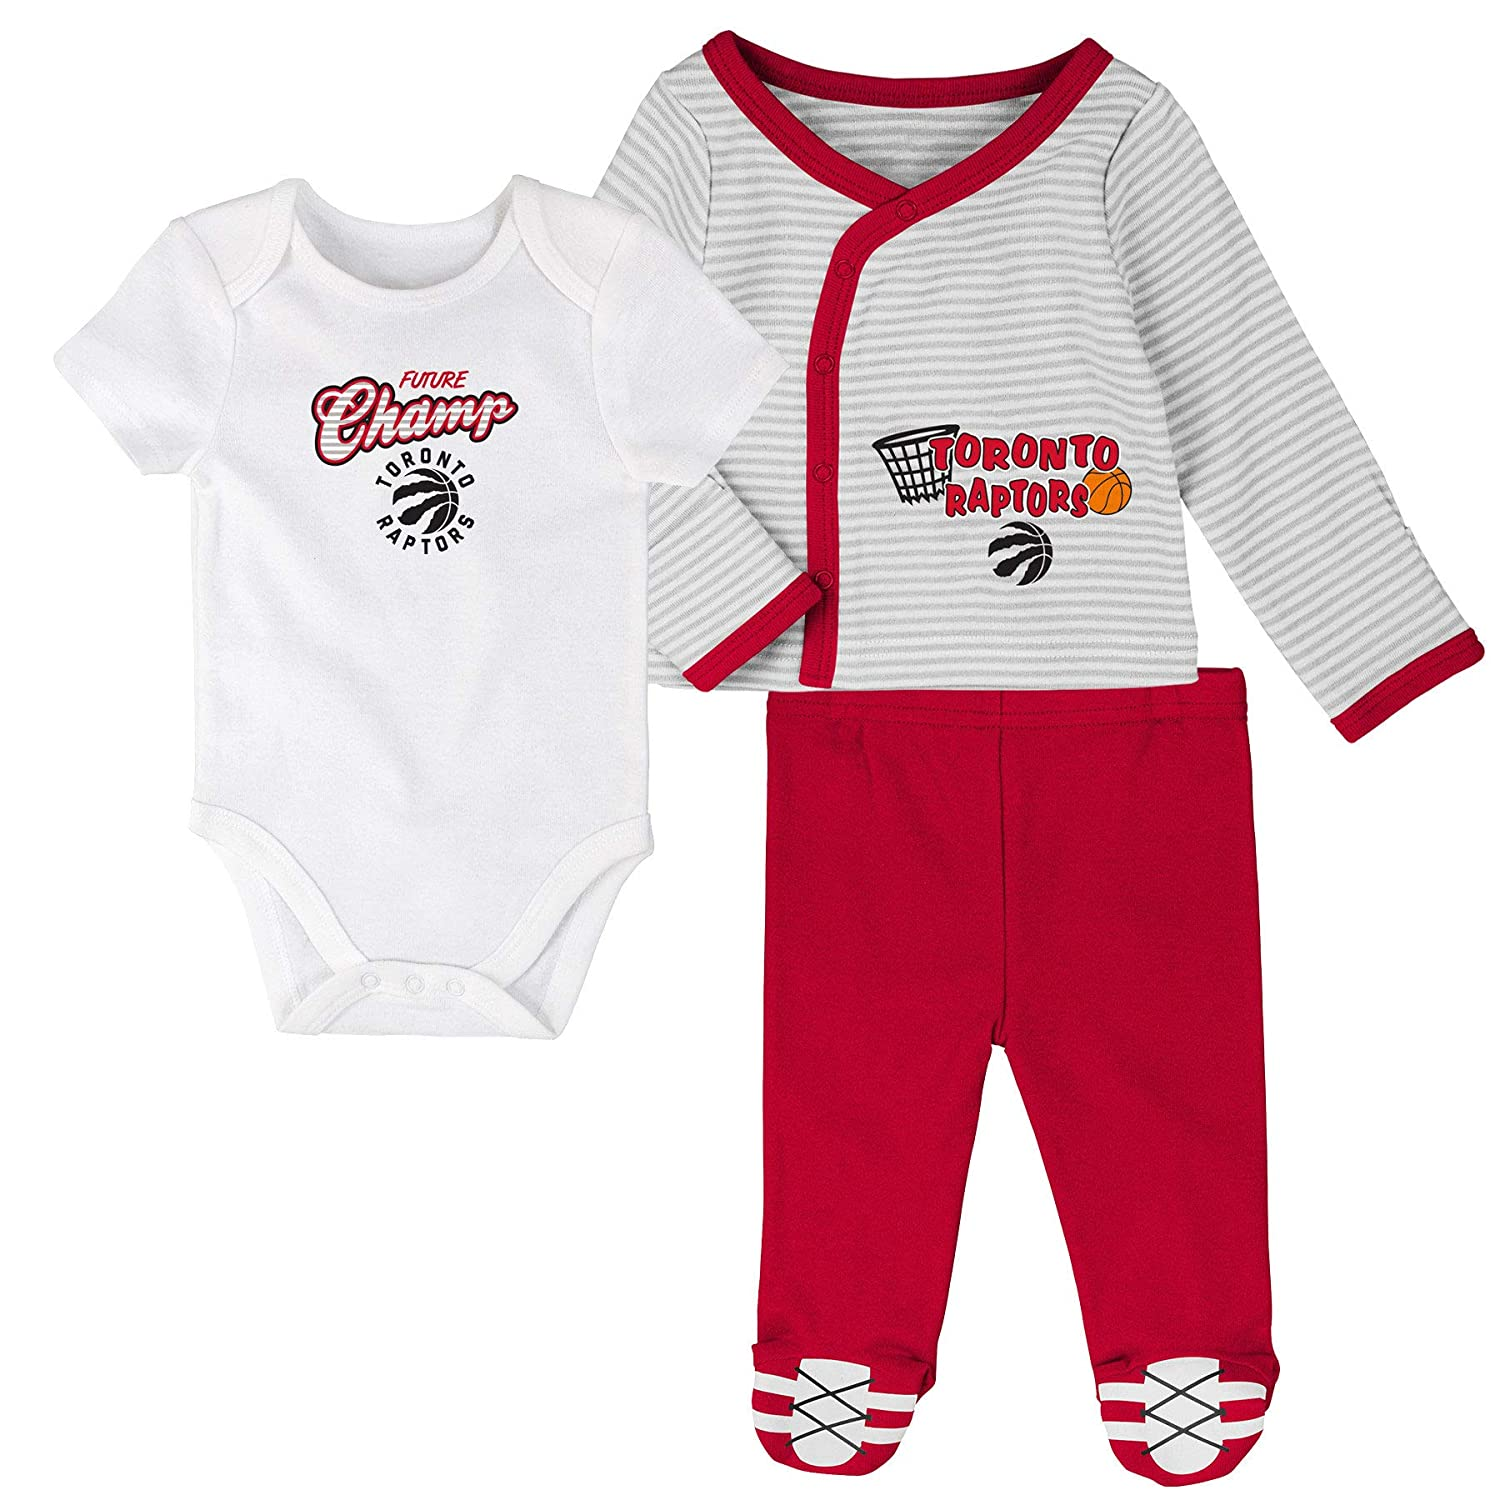 Toronto Raptors Newborn Future Champ Bodysuit and Pants Set Shirt